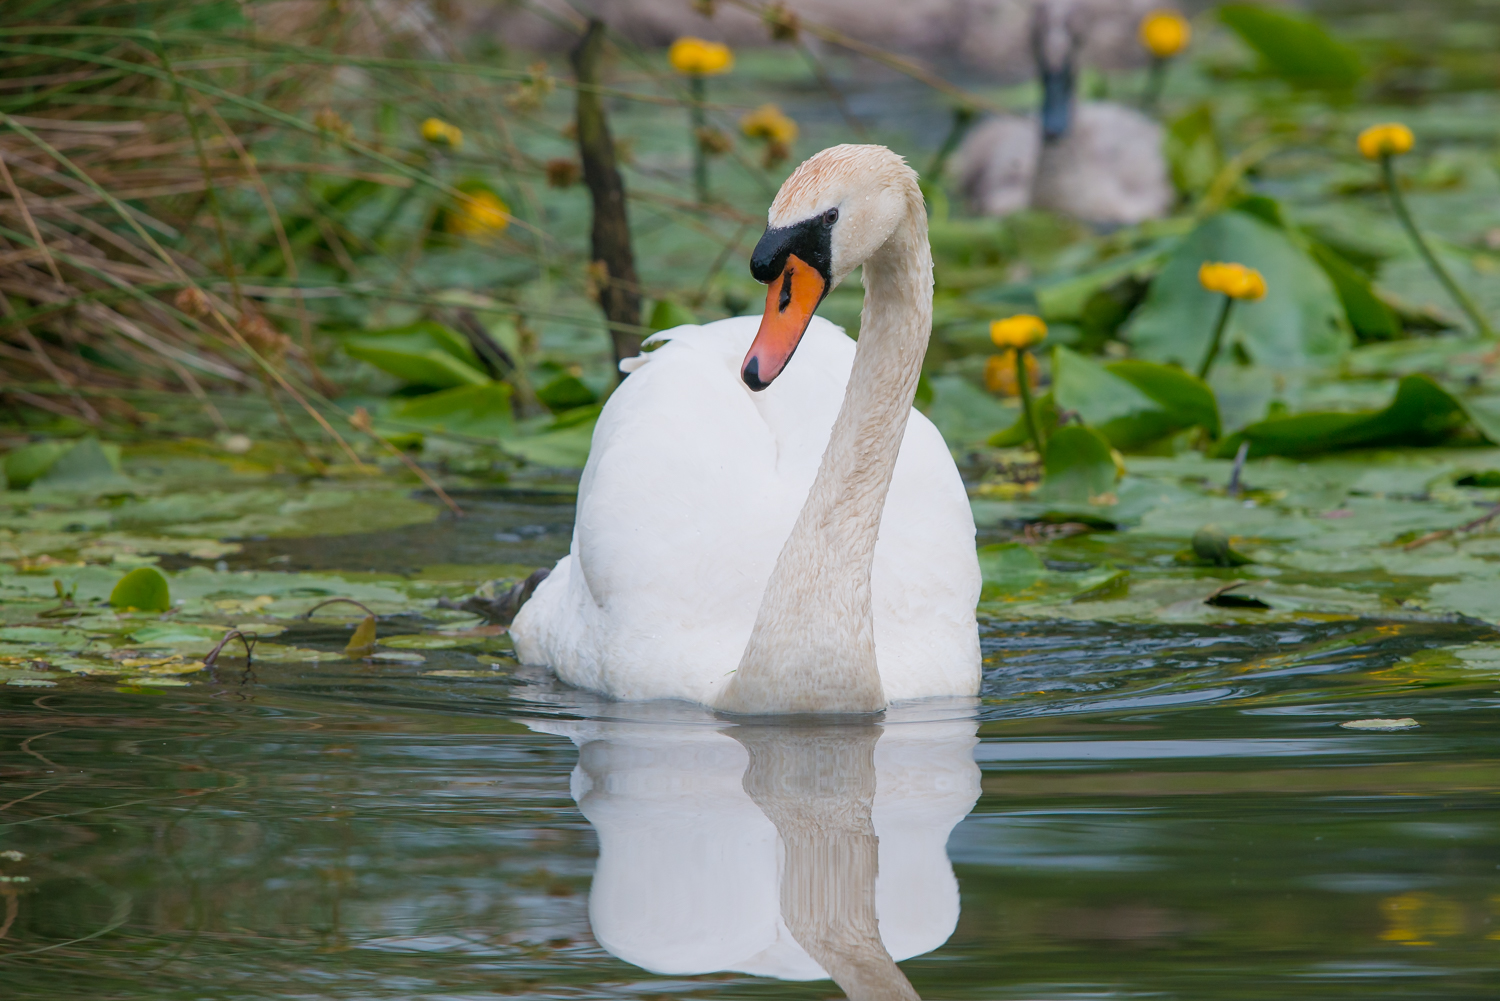 Mute Swan, UK birds, waterbirds, wildlife